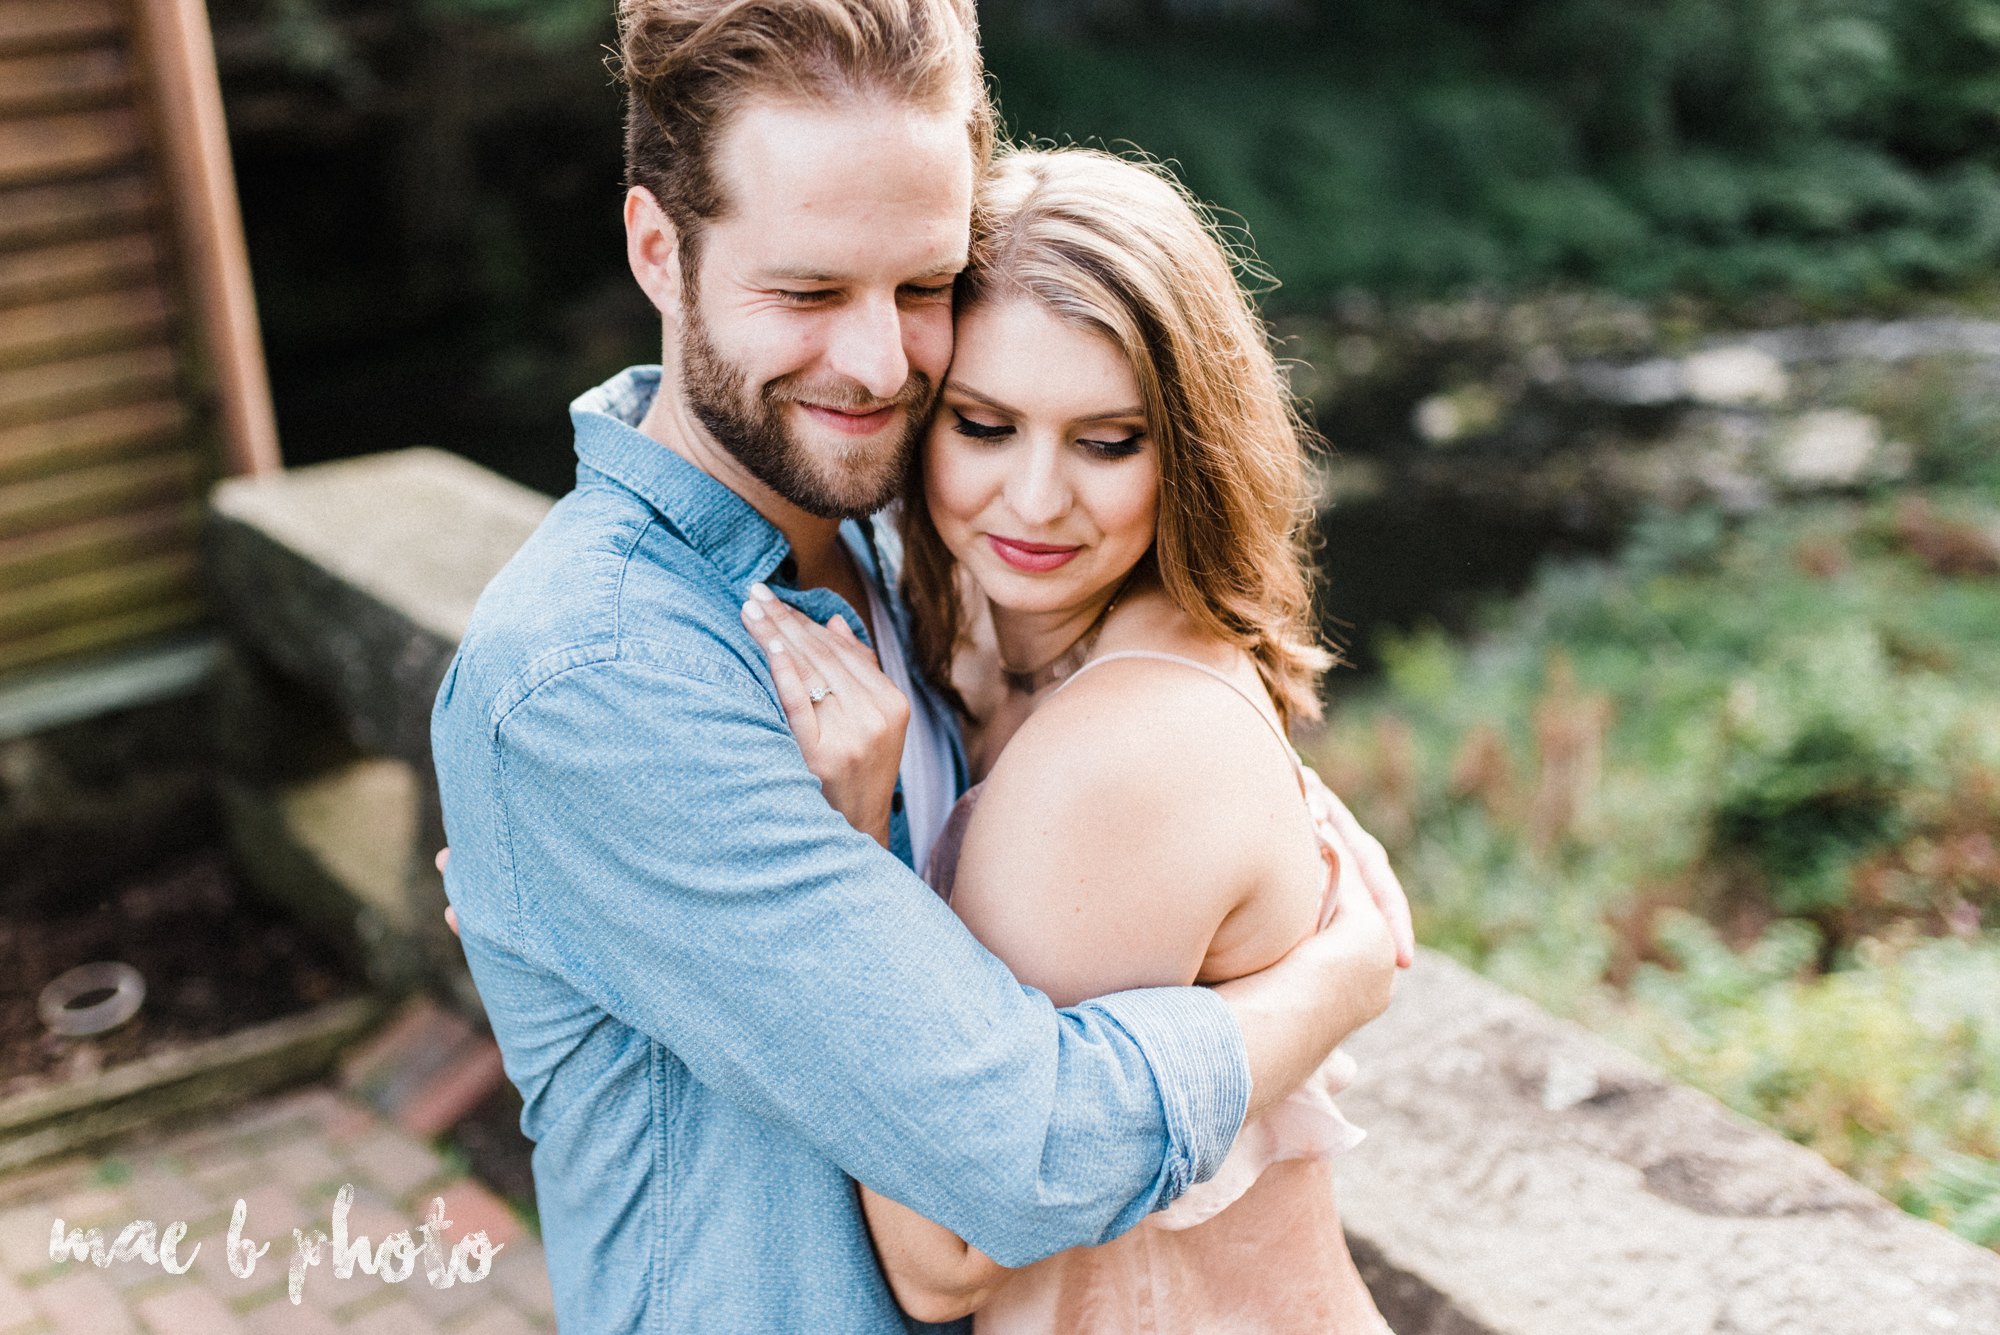 lauren and steve's summer engagement session at the rose gardens and lanterman's mill in mill creek park in youngstown ohio photographed by youngstown wedding photographer mae b photo-28.jpg